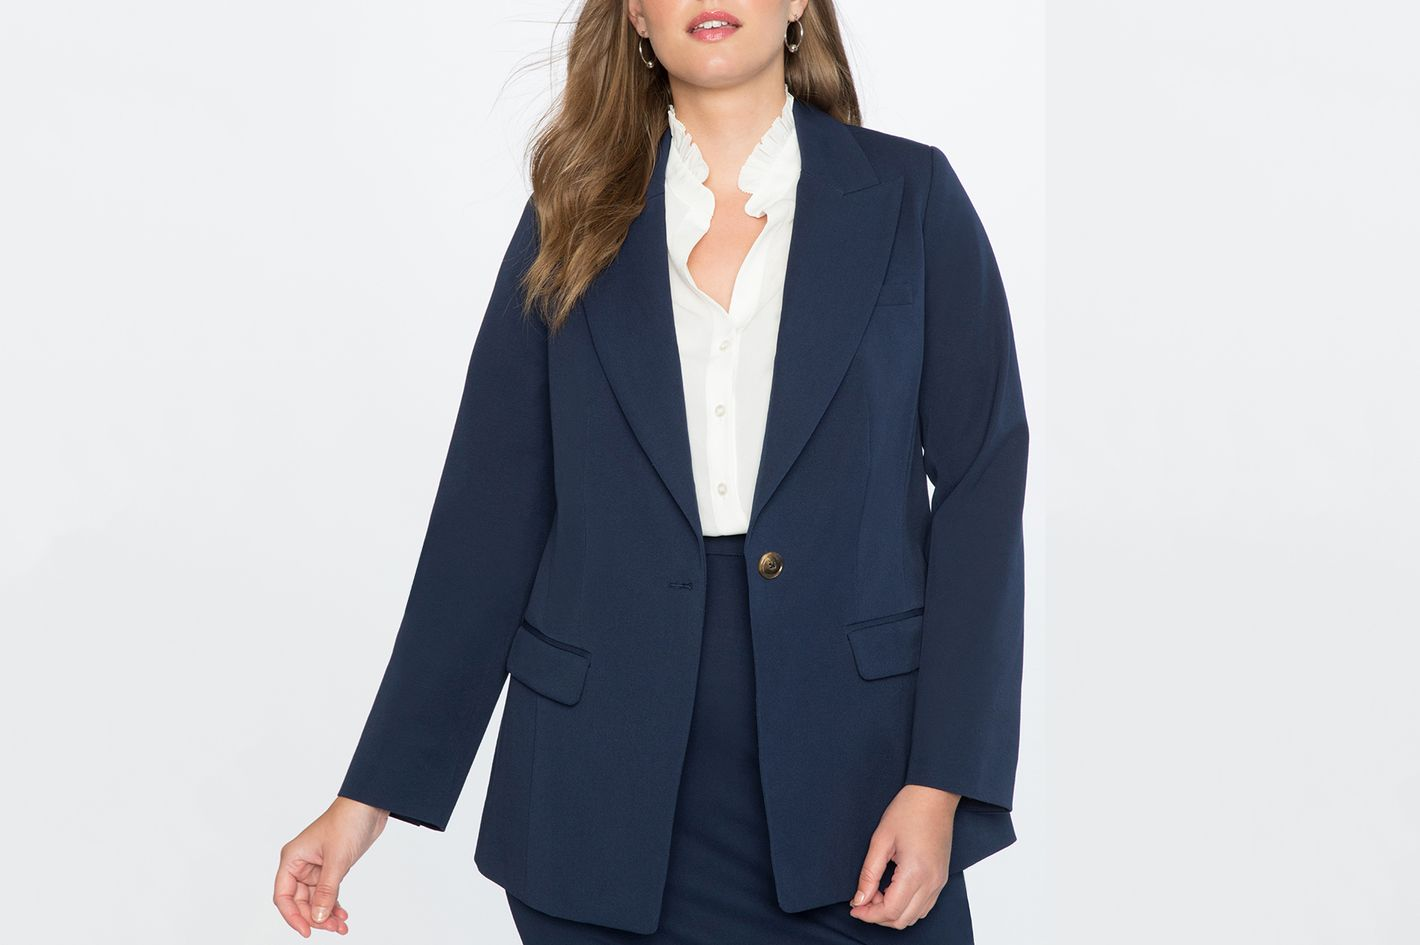 The 15 Best Work Blazers For The Professional Woman 2018